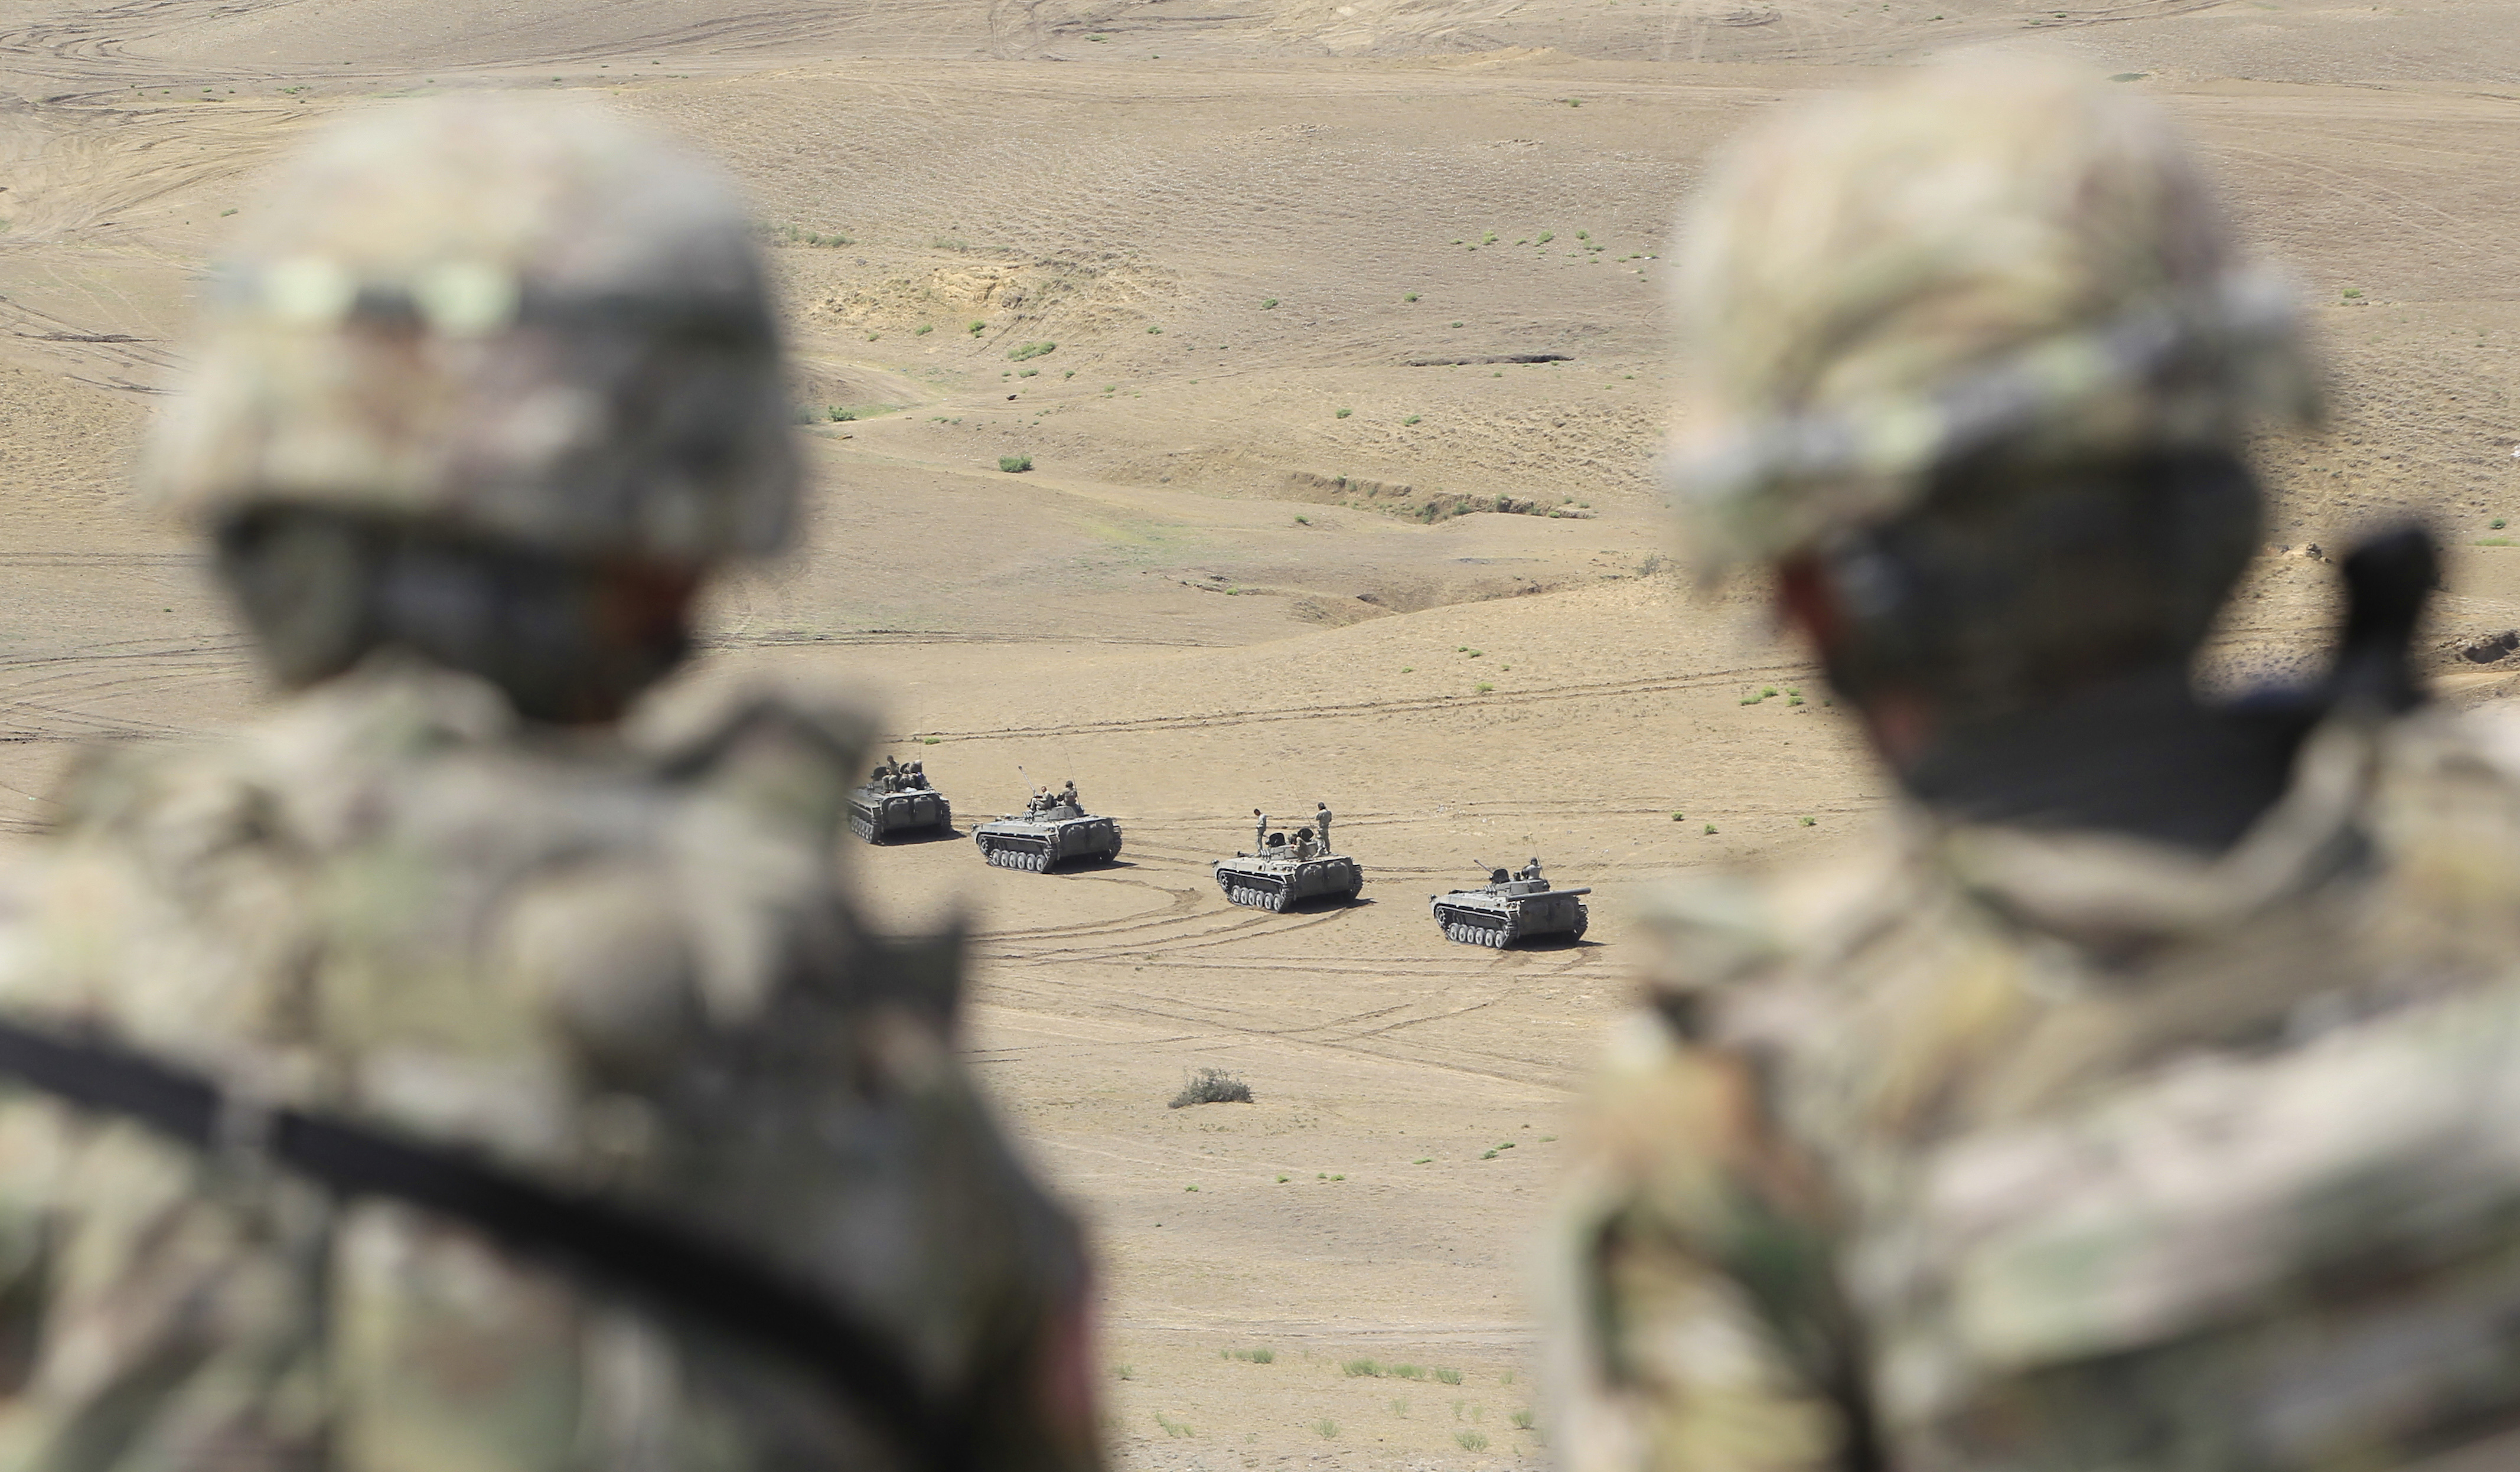 FILE - US soldiers watch as Georgian military vehicles take part in NATO-led Noble Partner 2017 multinational military exercises at the military base of Vaziani, outside Tbilisi, Georgia, Aug. 9, 2017.